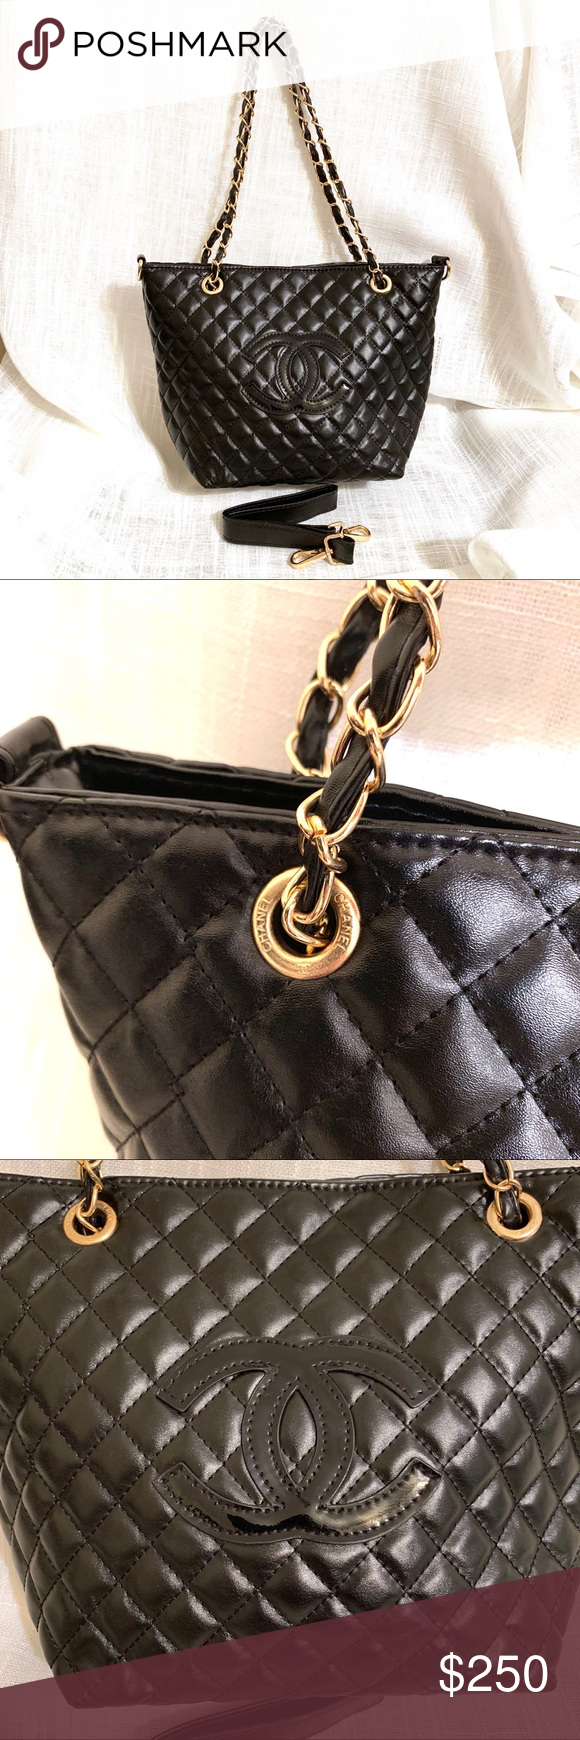 f0dacf18a6d1 Chanel Precision Quilted VIP Gift Tote Bag Chain Brand new, never used, no  flaws